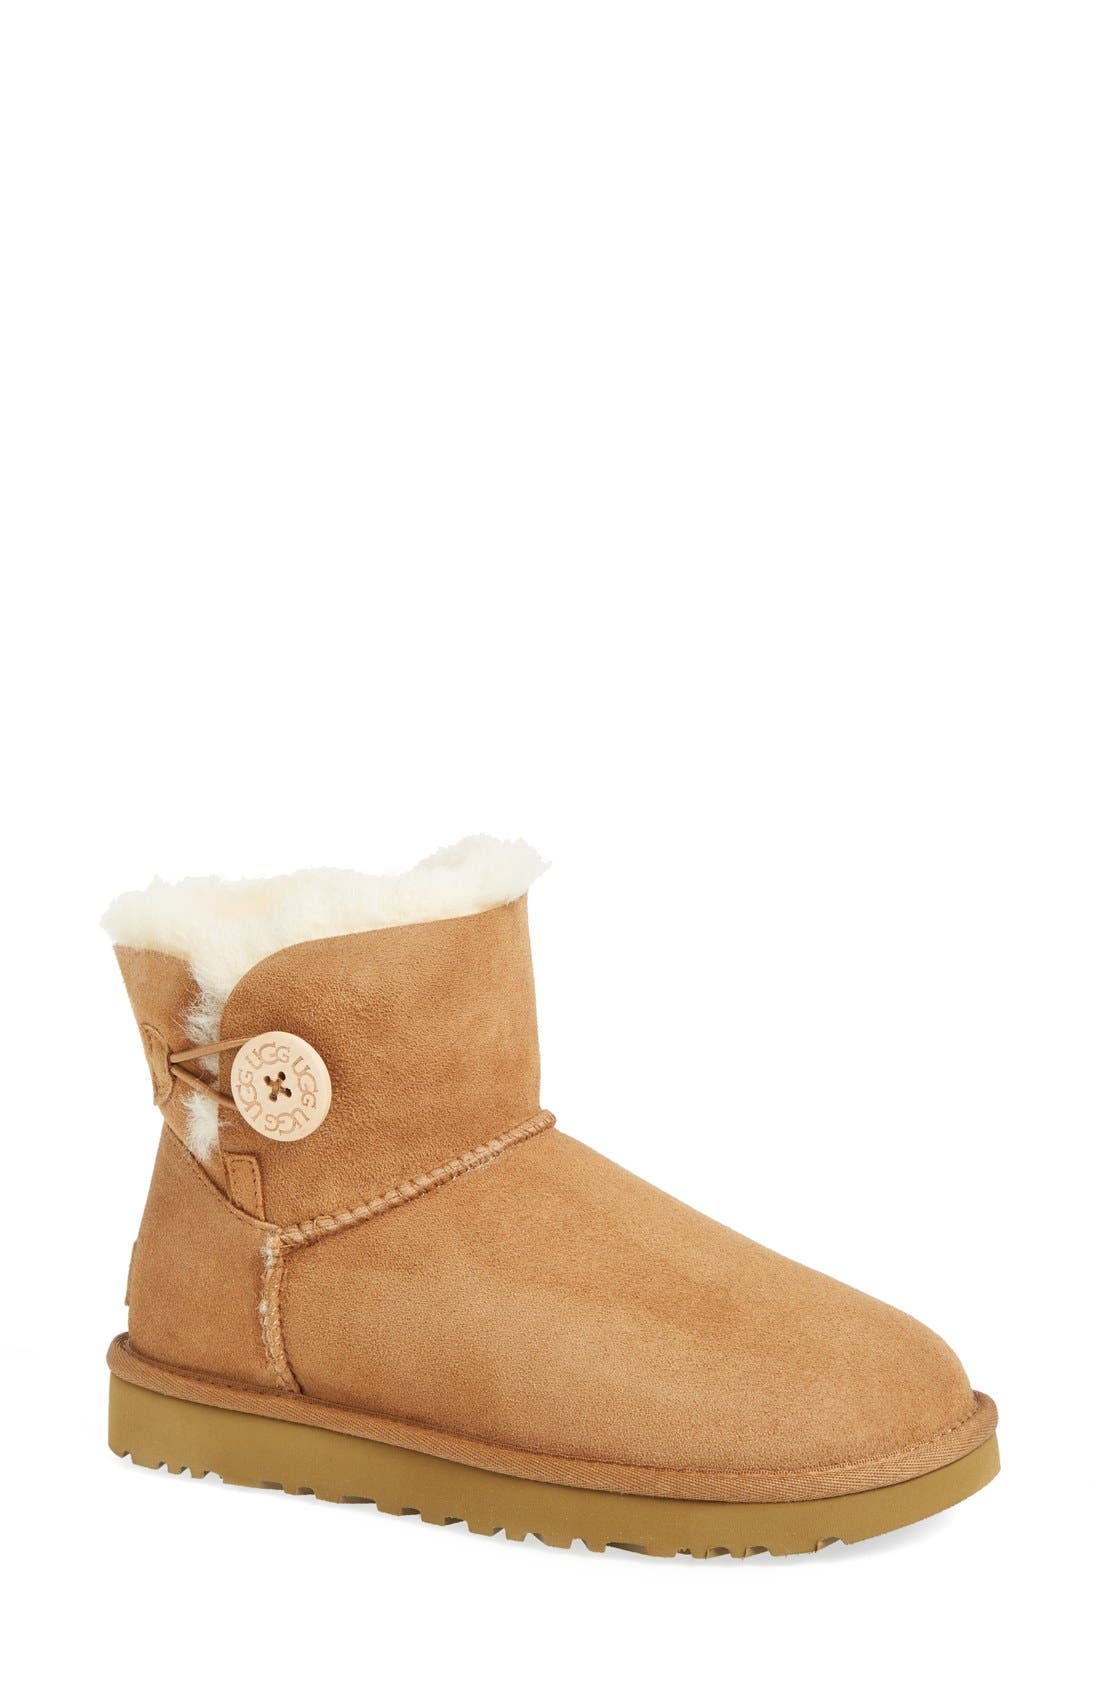 Main Image - UGG® 'Mini Bailey Button II' Boot (Women)